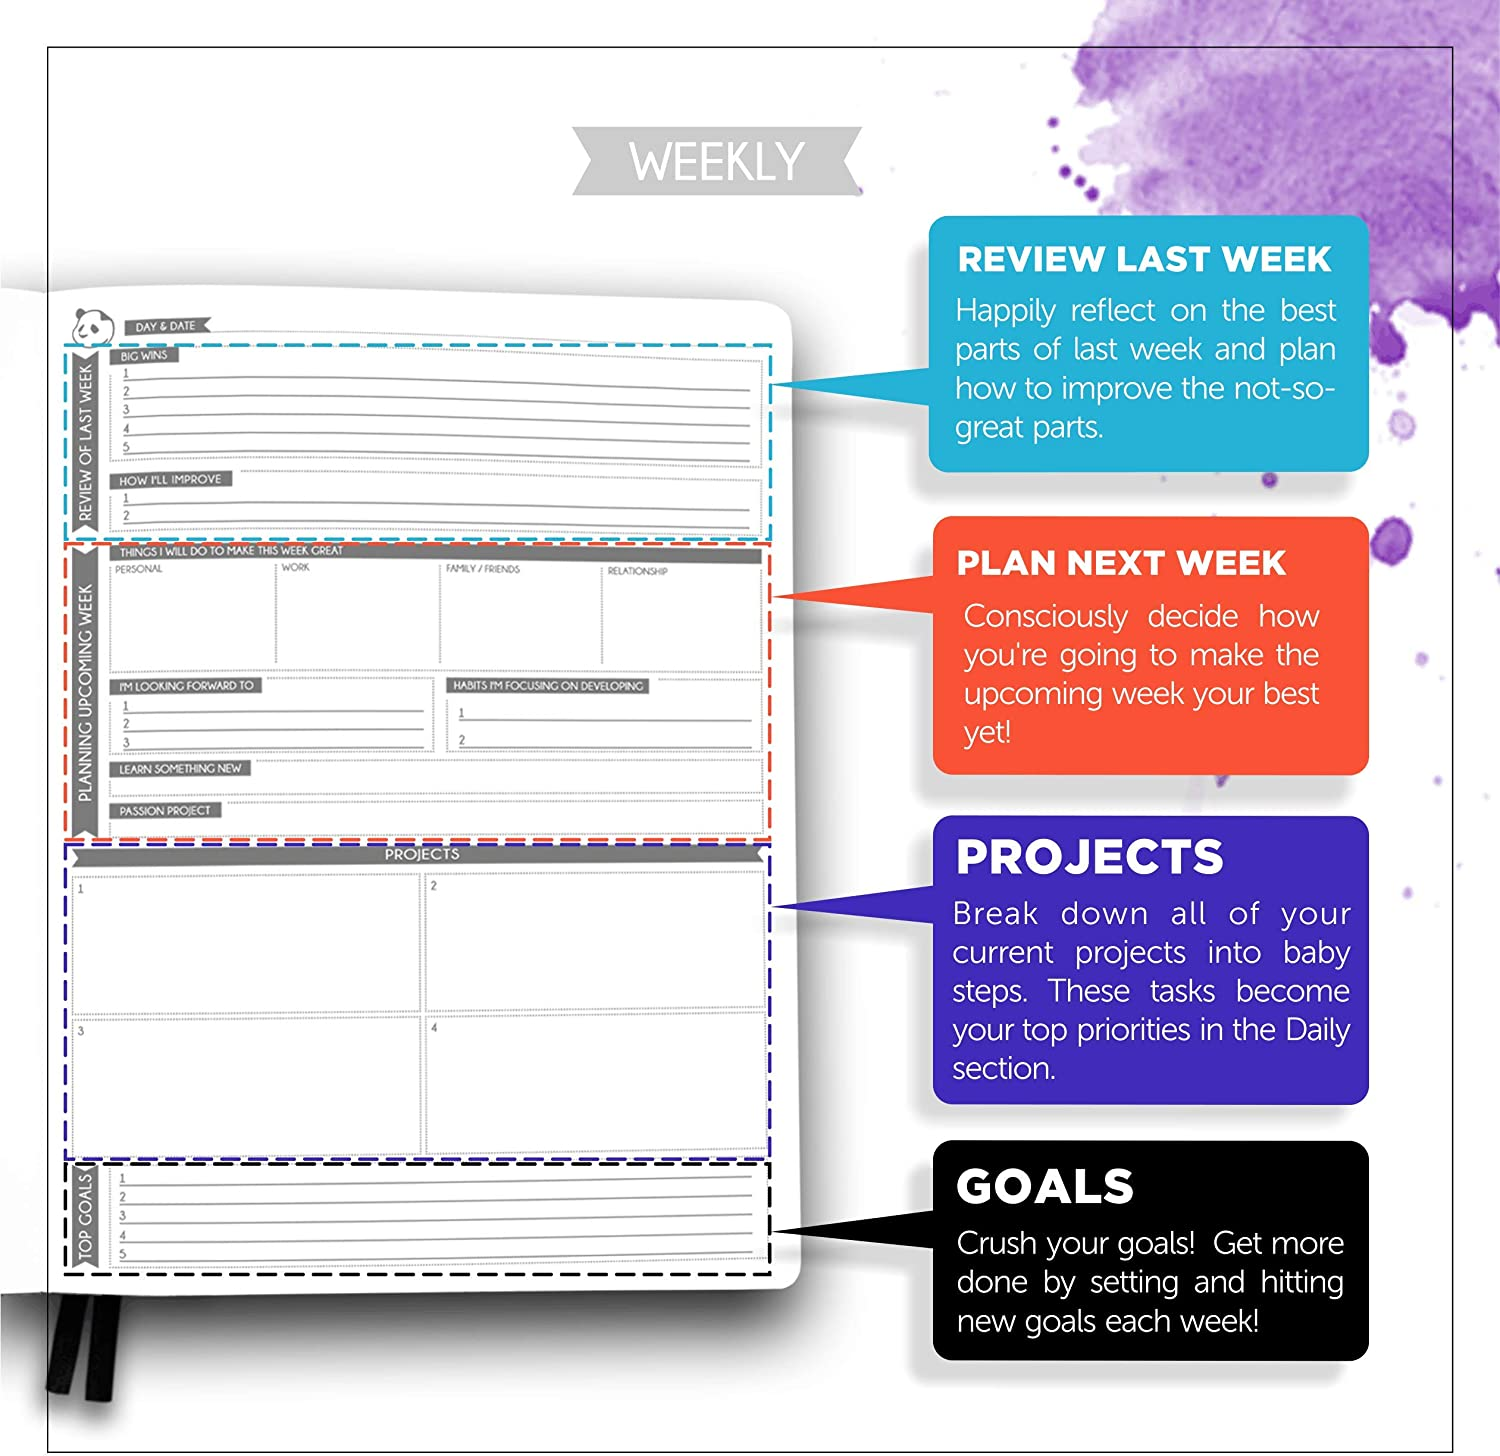 Guaranteed to Get You Organized Cyan Gratitude /& Goals Journal Panda Planner Pro 8.5 x 11 Softcover Best Daily Planner for Happiness /& Productivity Undated Day